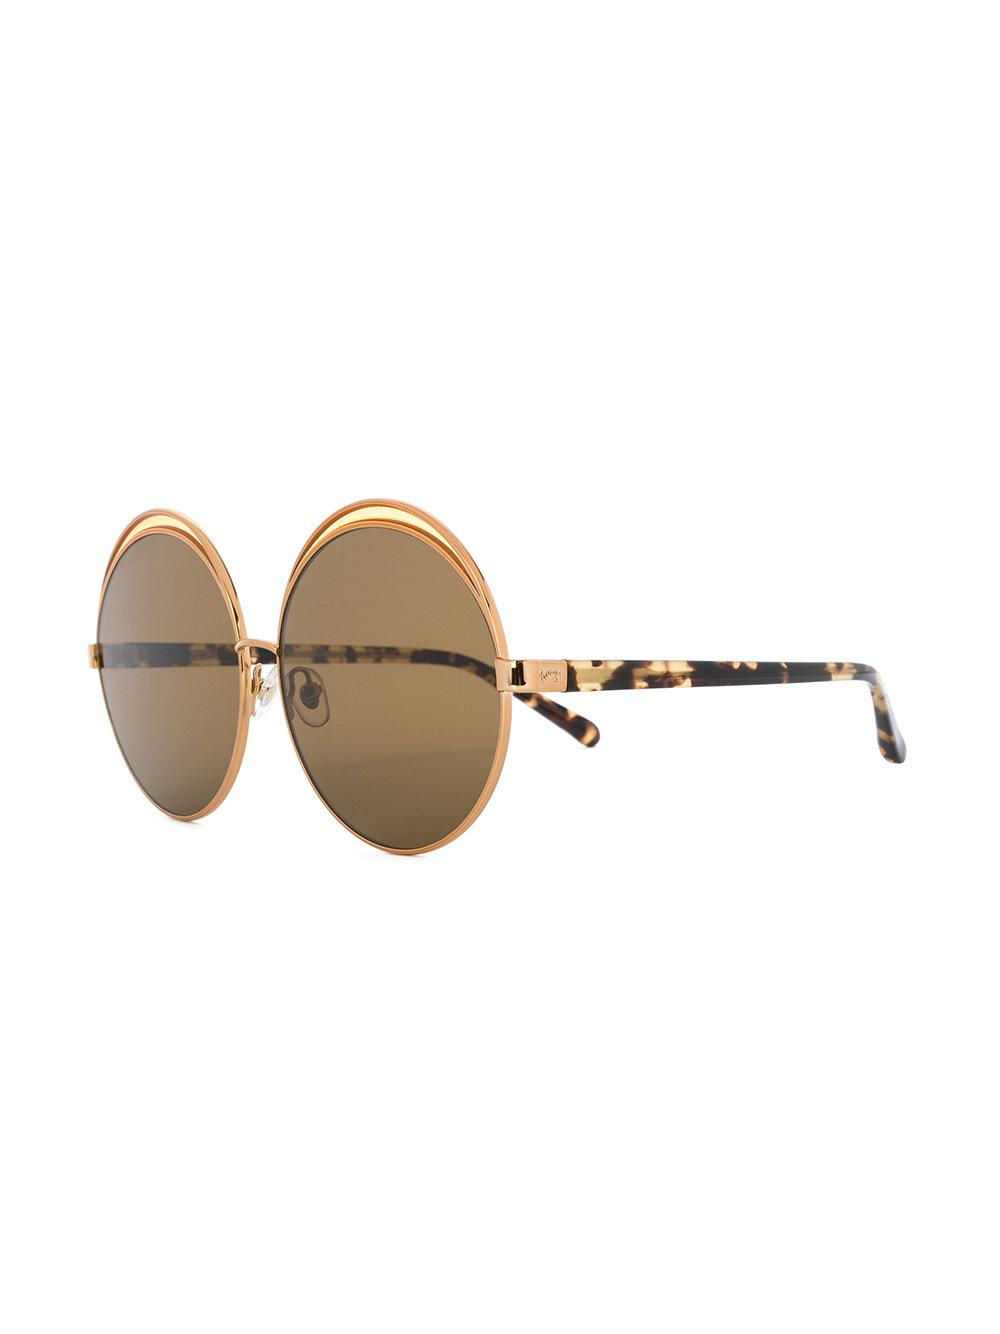 Linda Farrow Round Oversized Sunglasses in Brown